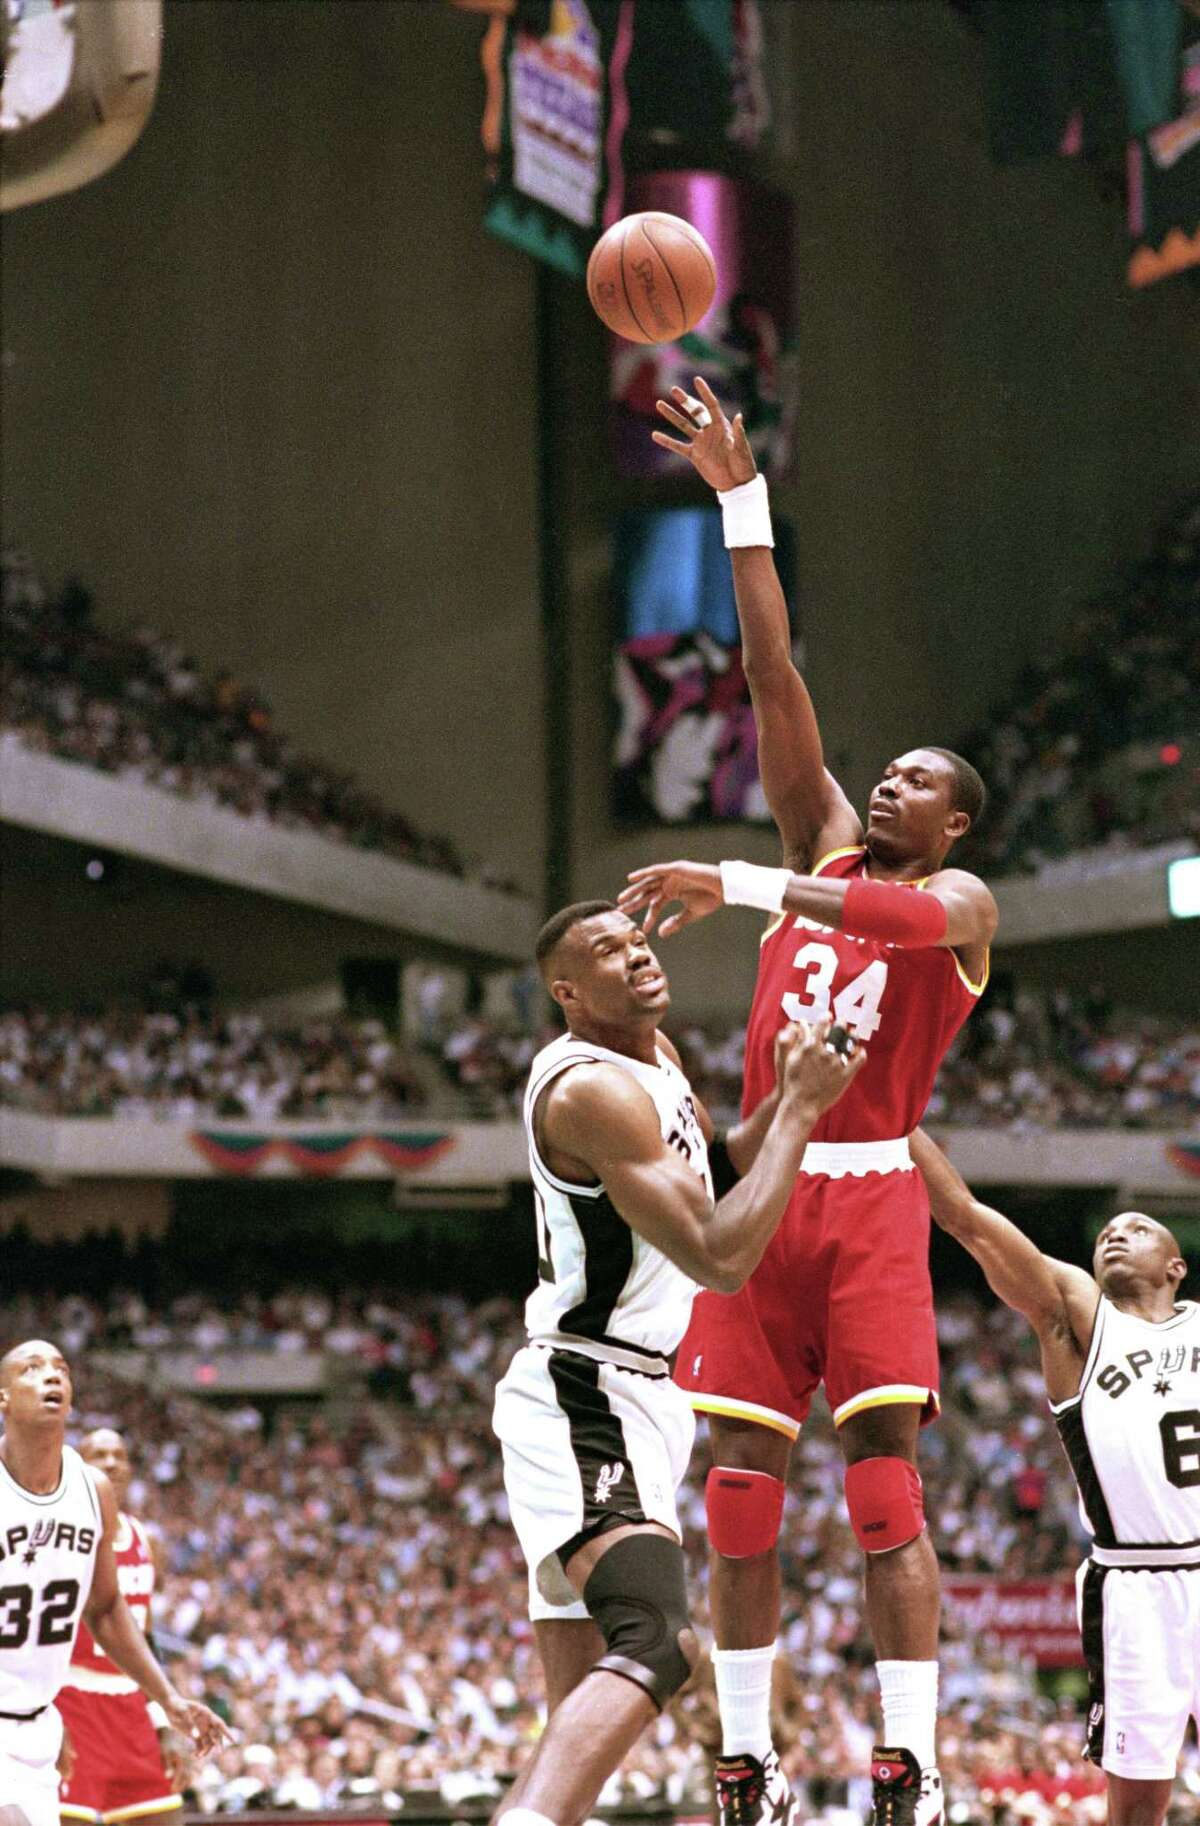 05/30/1995 - Houston Rockets Hakeem Olajuwon shoots over San Antonio Spurs David Robinson in game 5 of the Western Conference Finals.